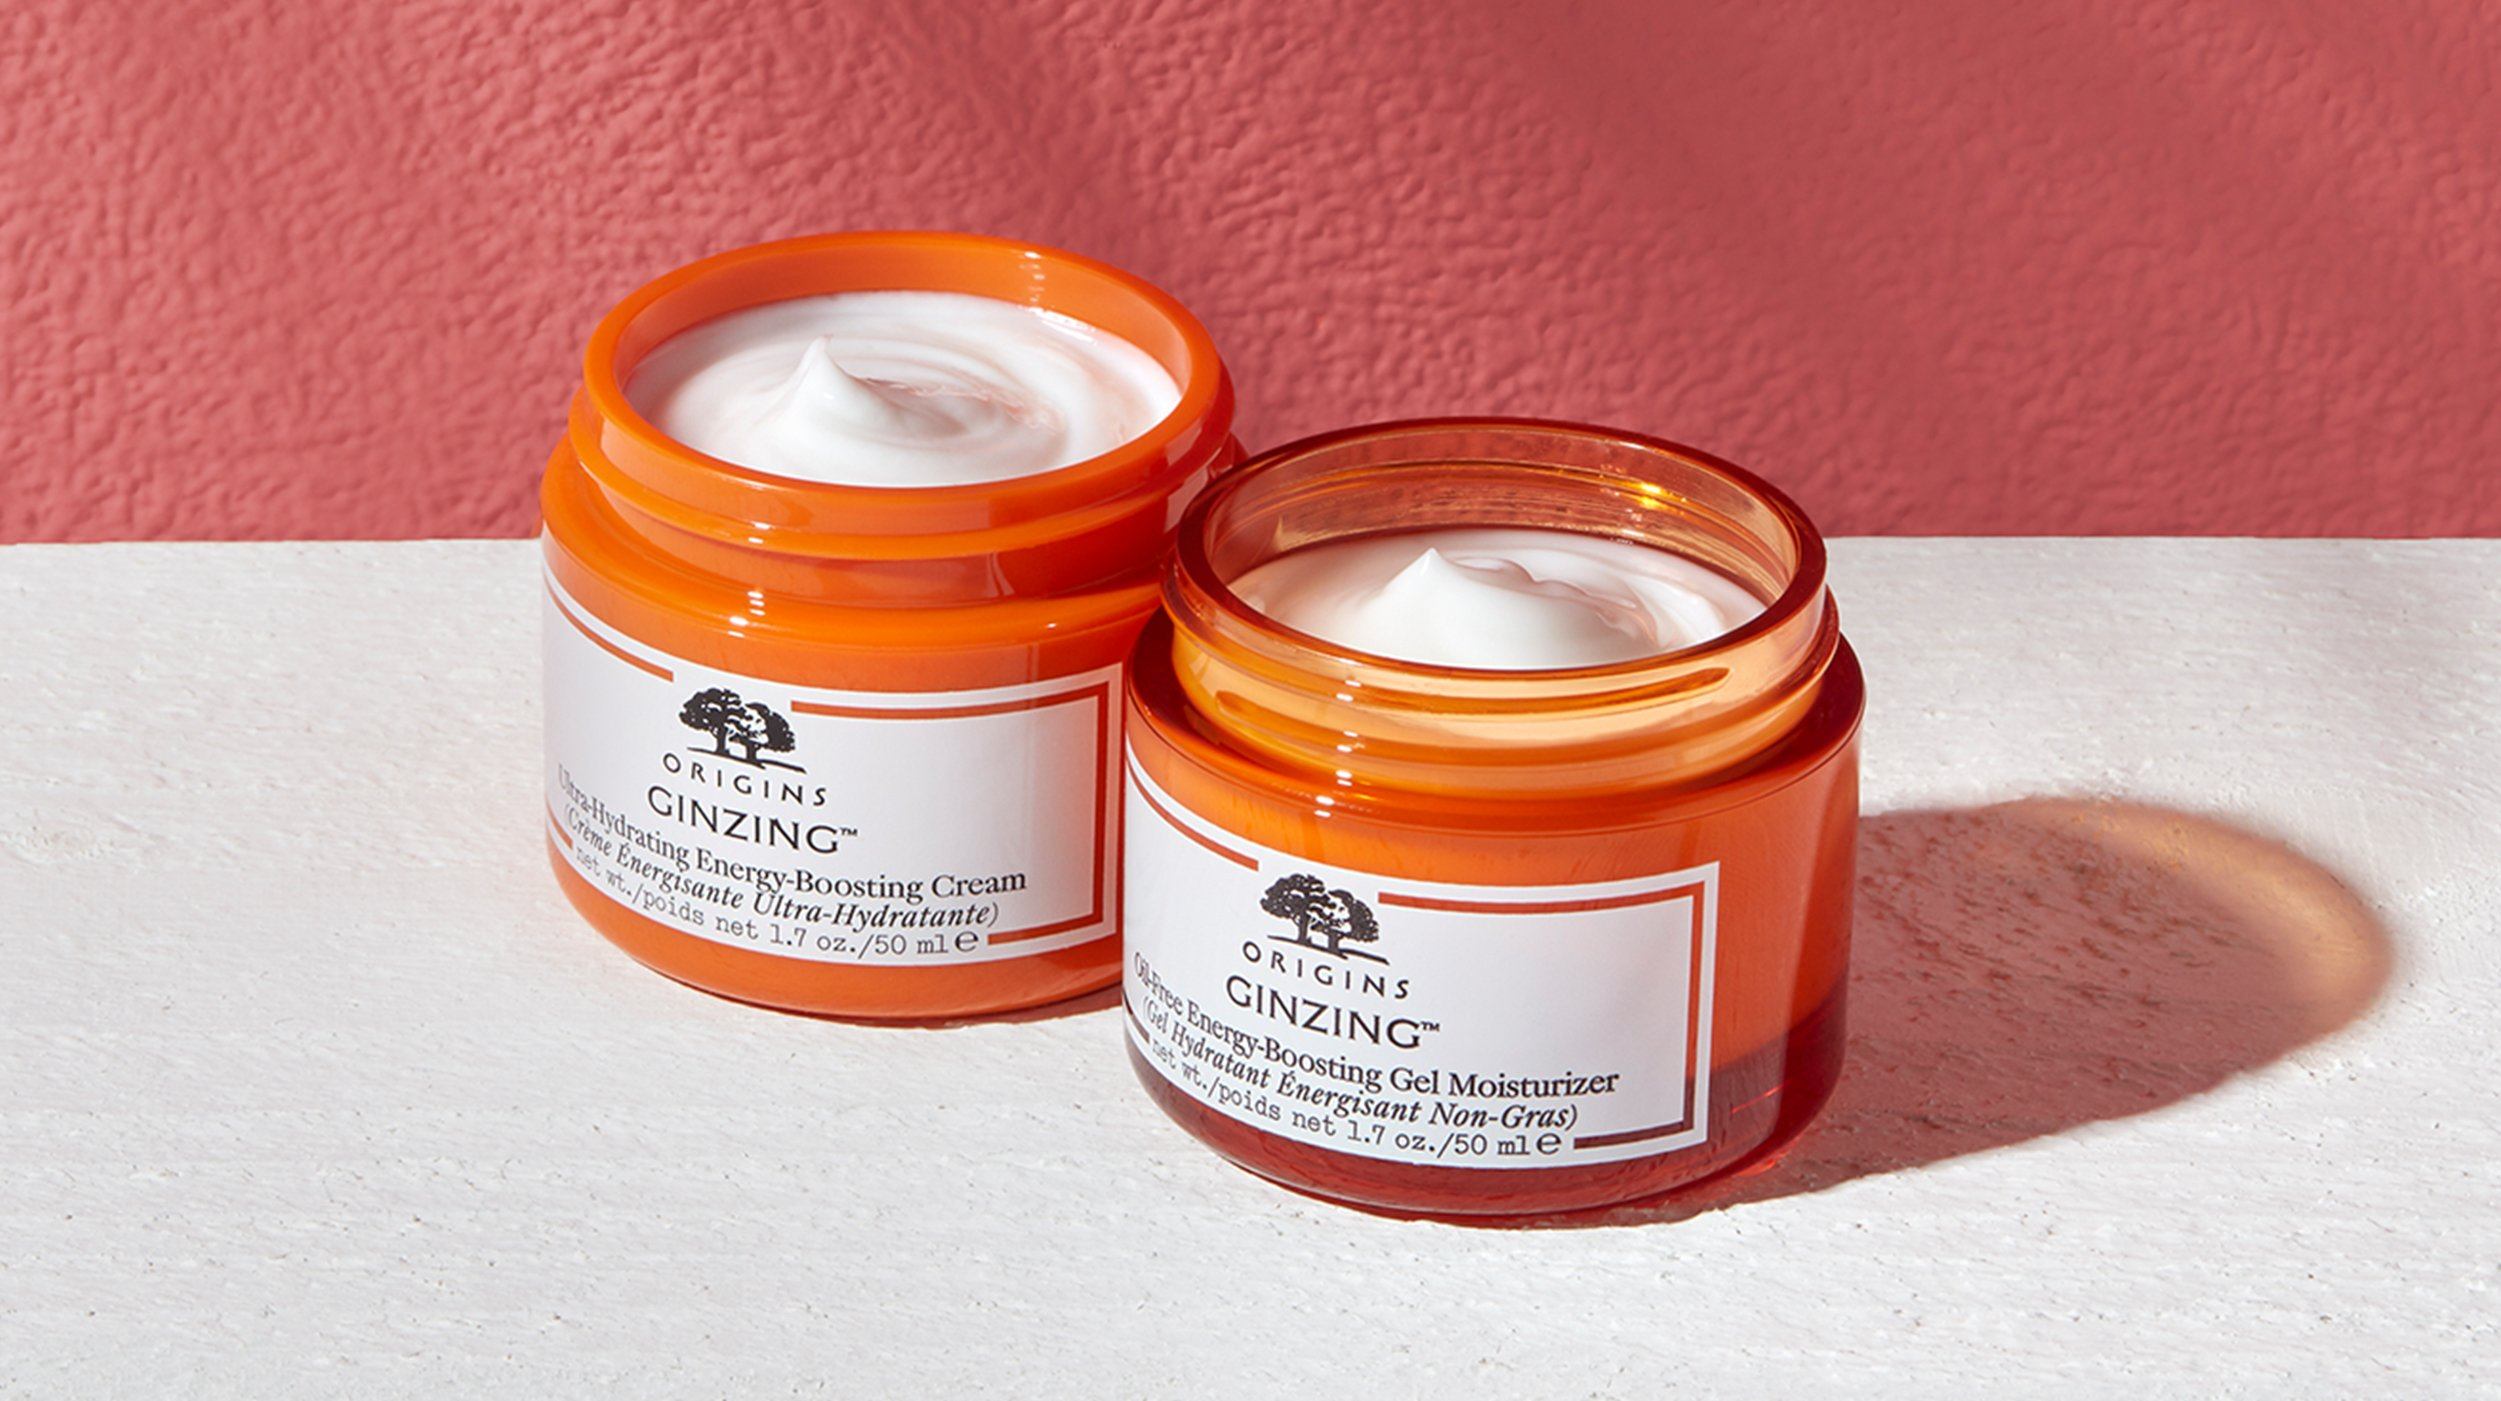 Wake up your skin with Origins GinZing